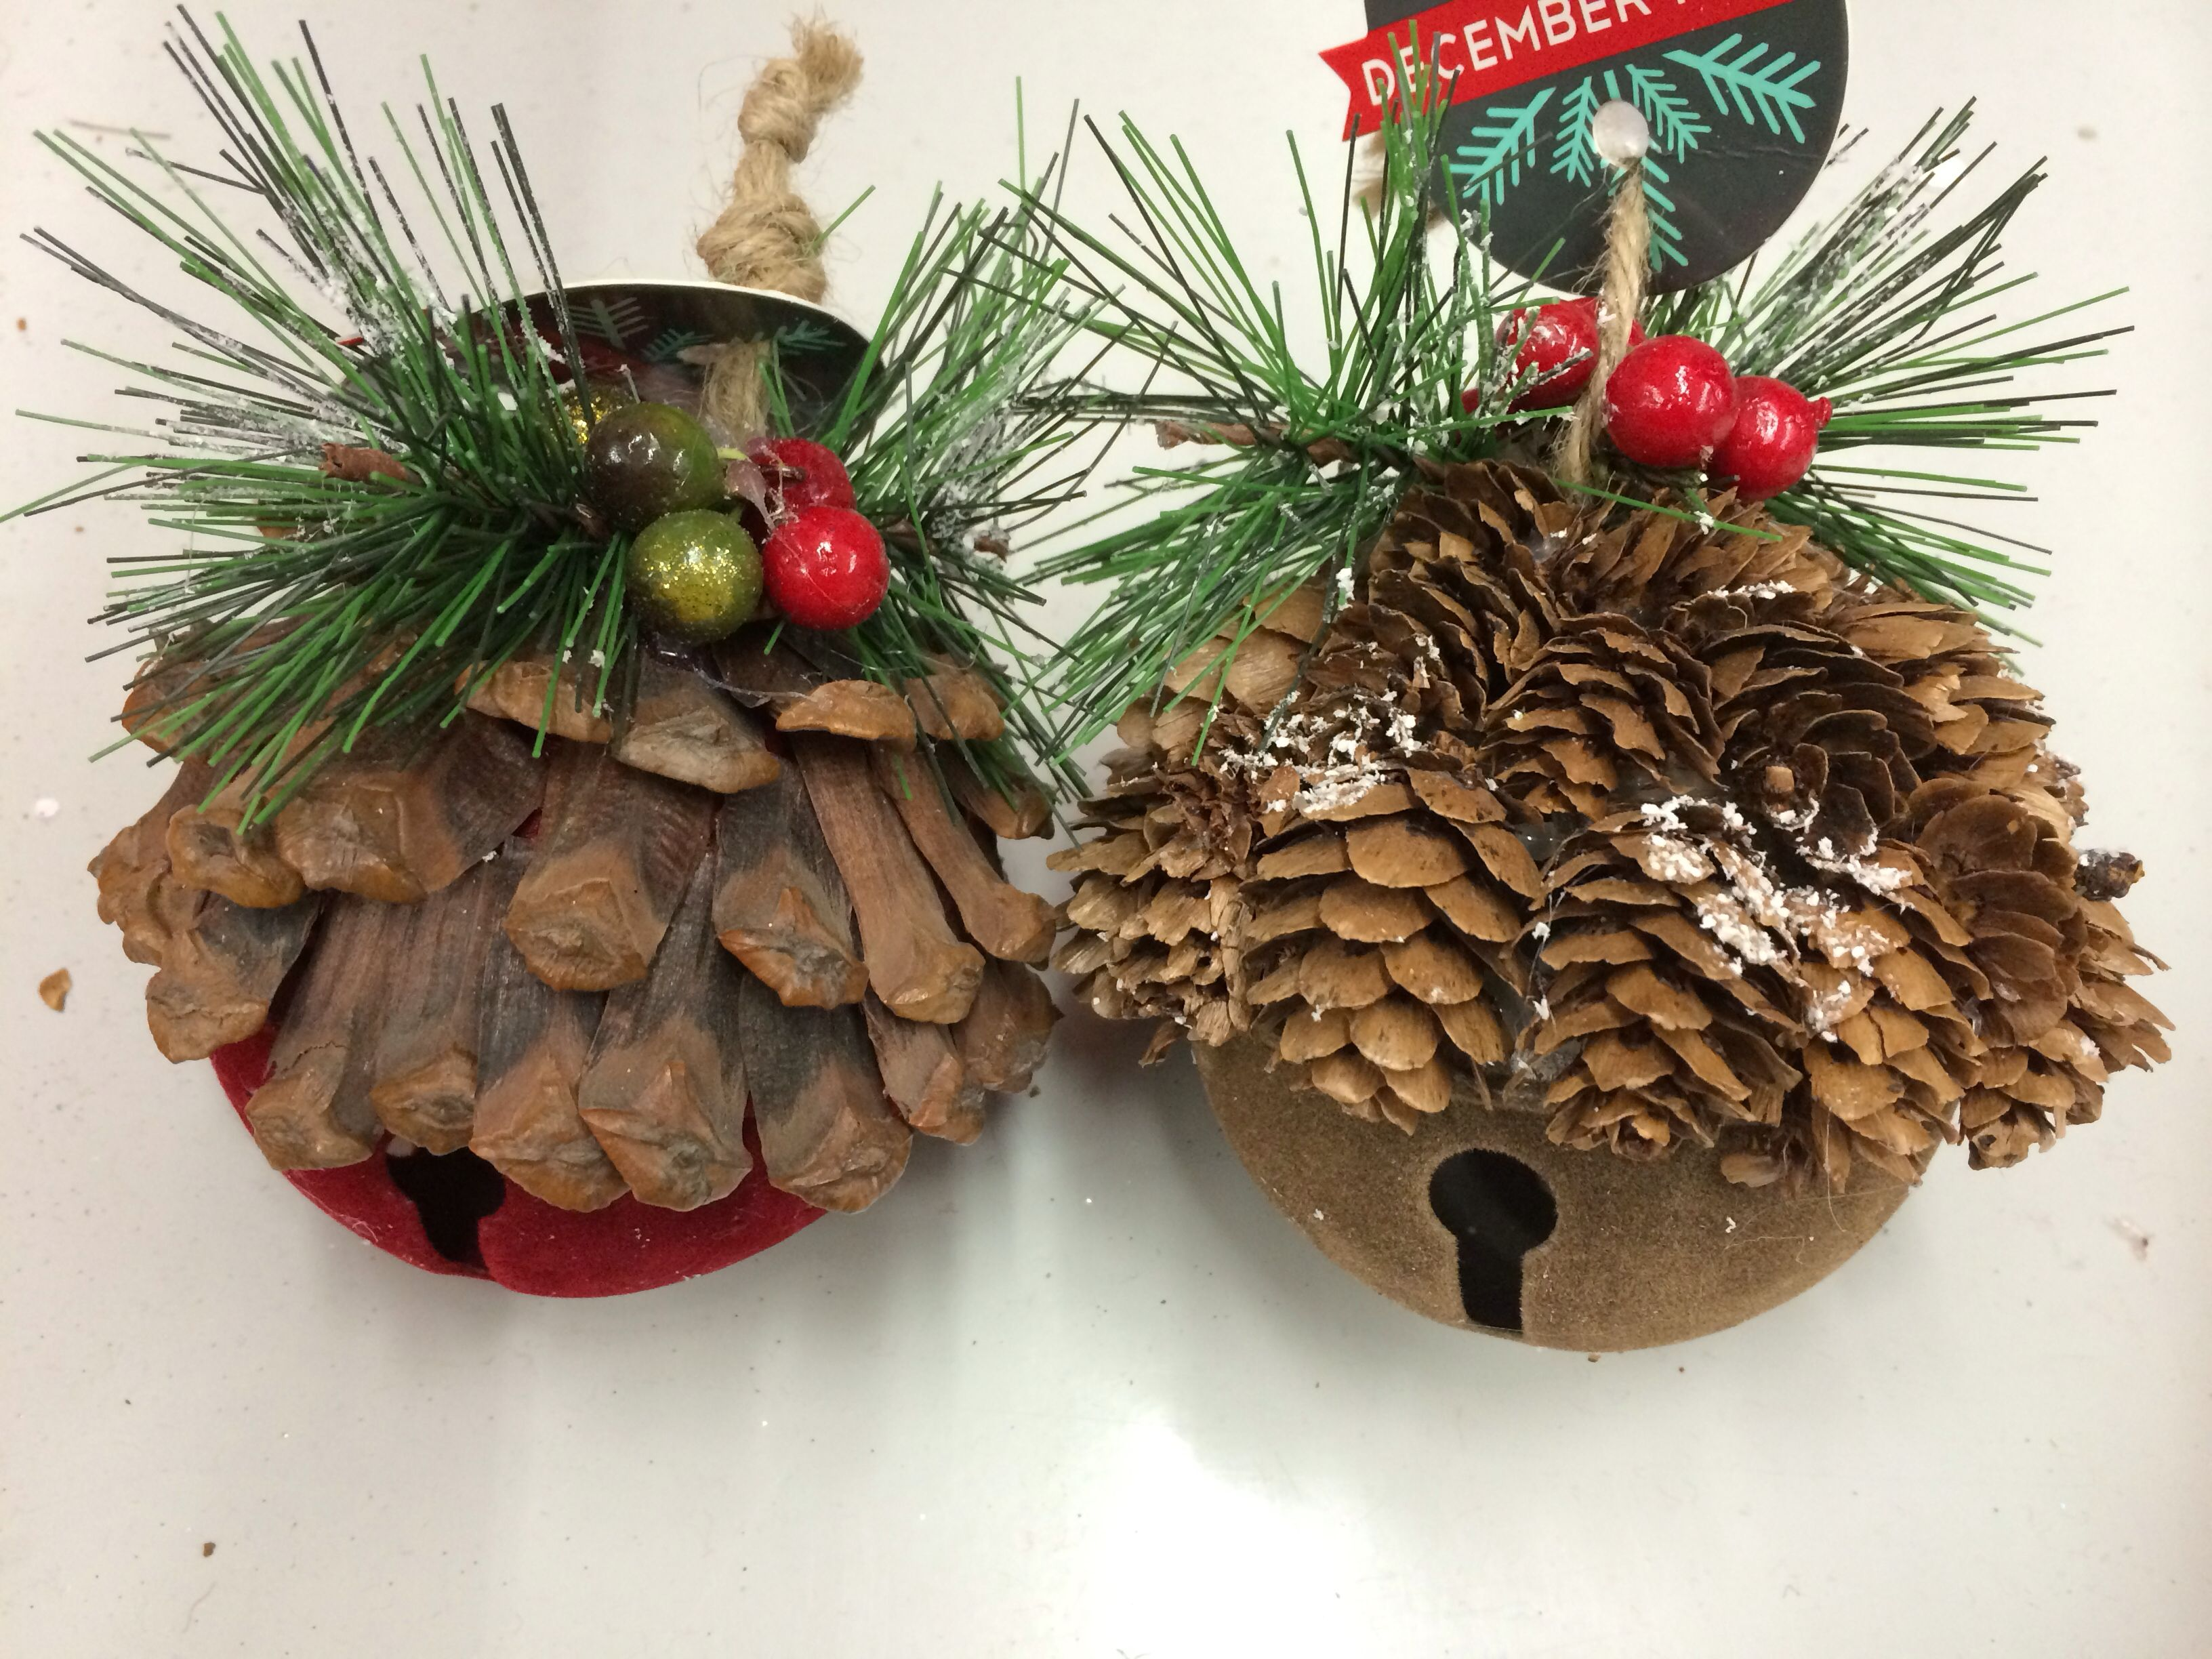 Diy Jumbo Pinecone Scale Jingle Bell Ornaments W Greenery Berries Mica These Bells Are Flocked For Sale A Handmade Christmas Bell Ornaments Christmas Wreaths